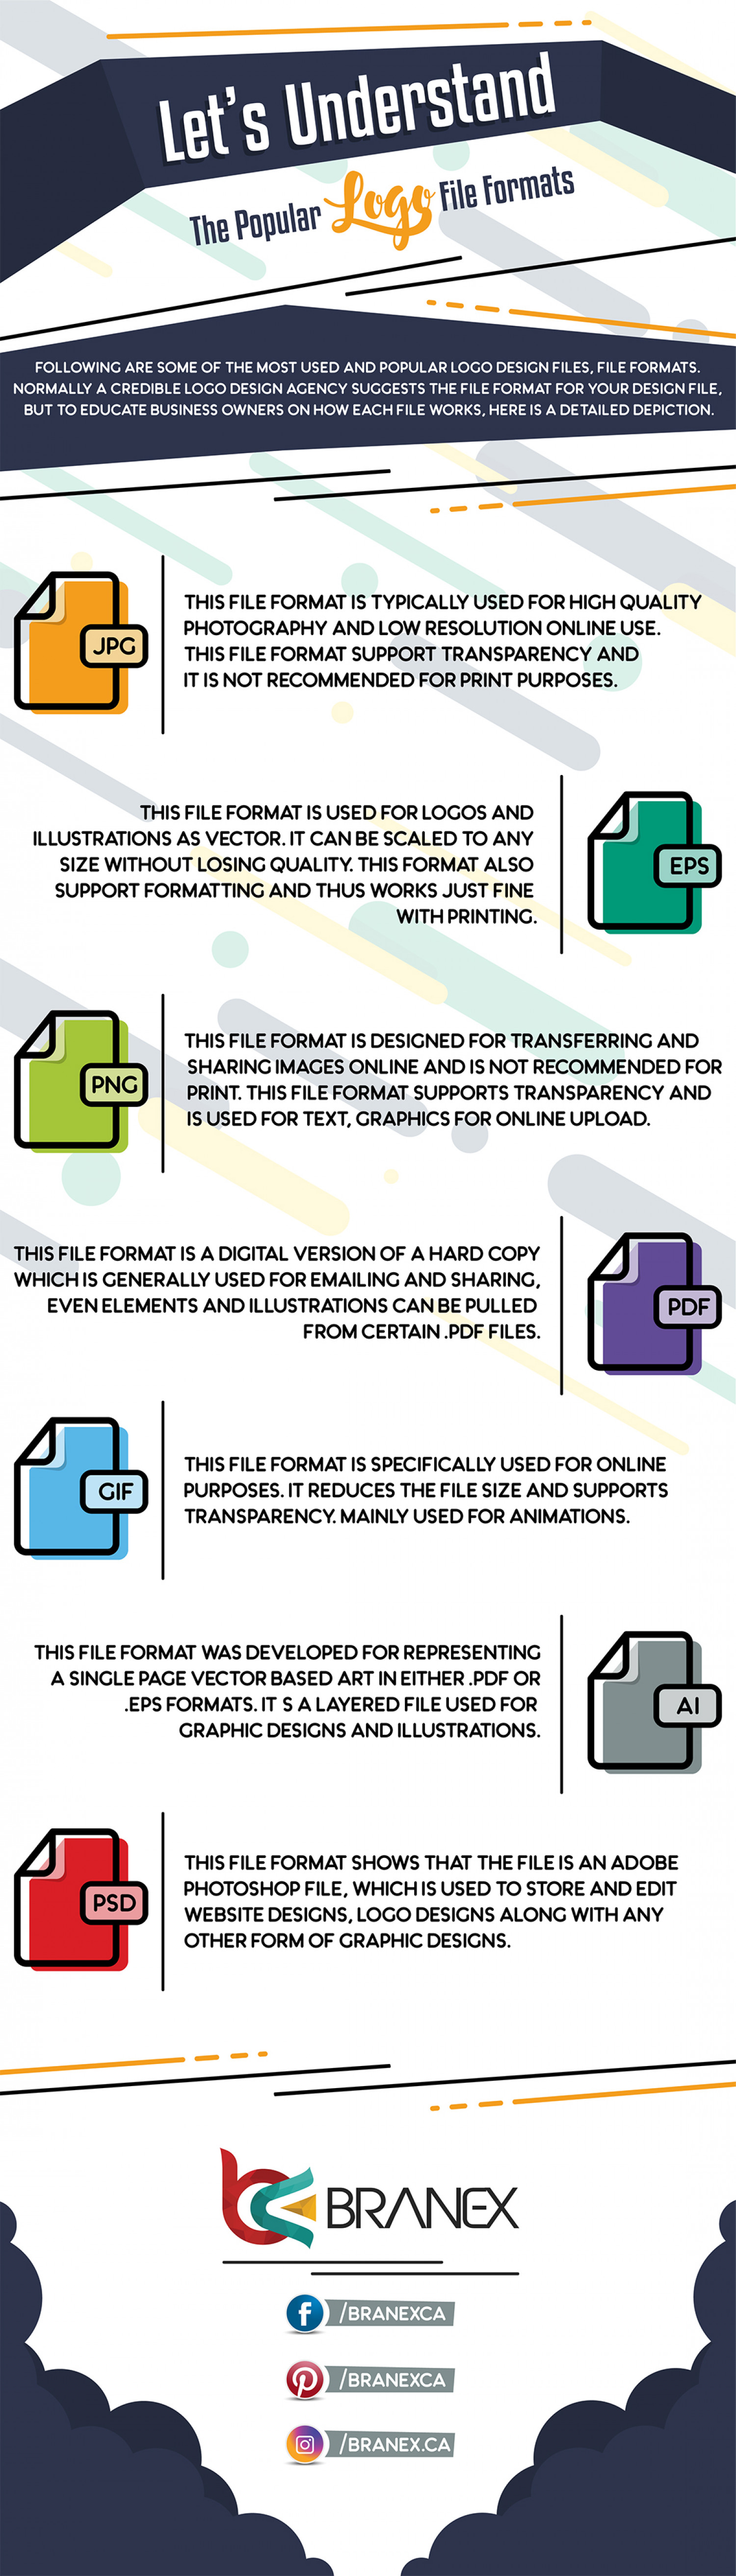 Let's Understand The Popular Logo File Formats Infographic